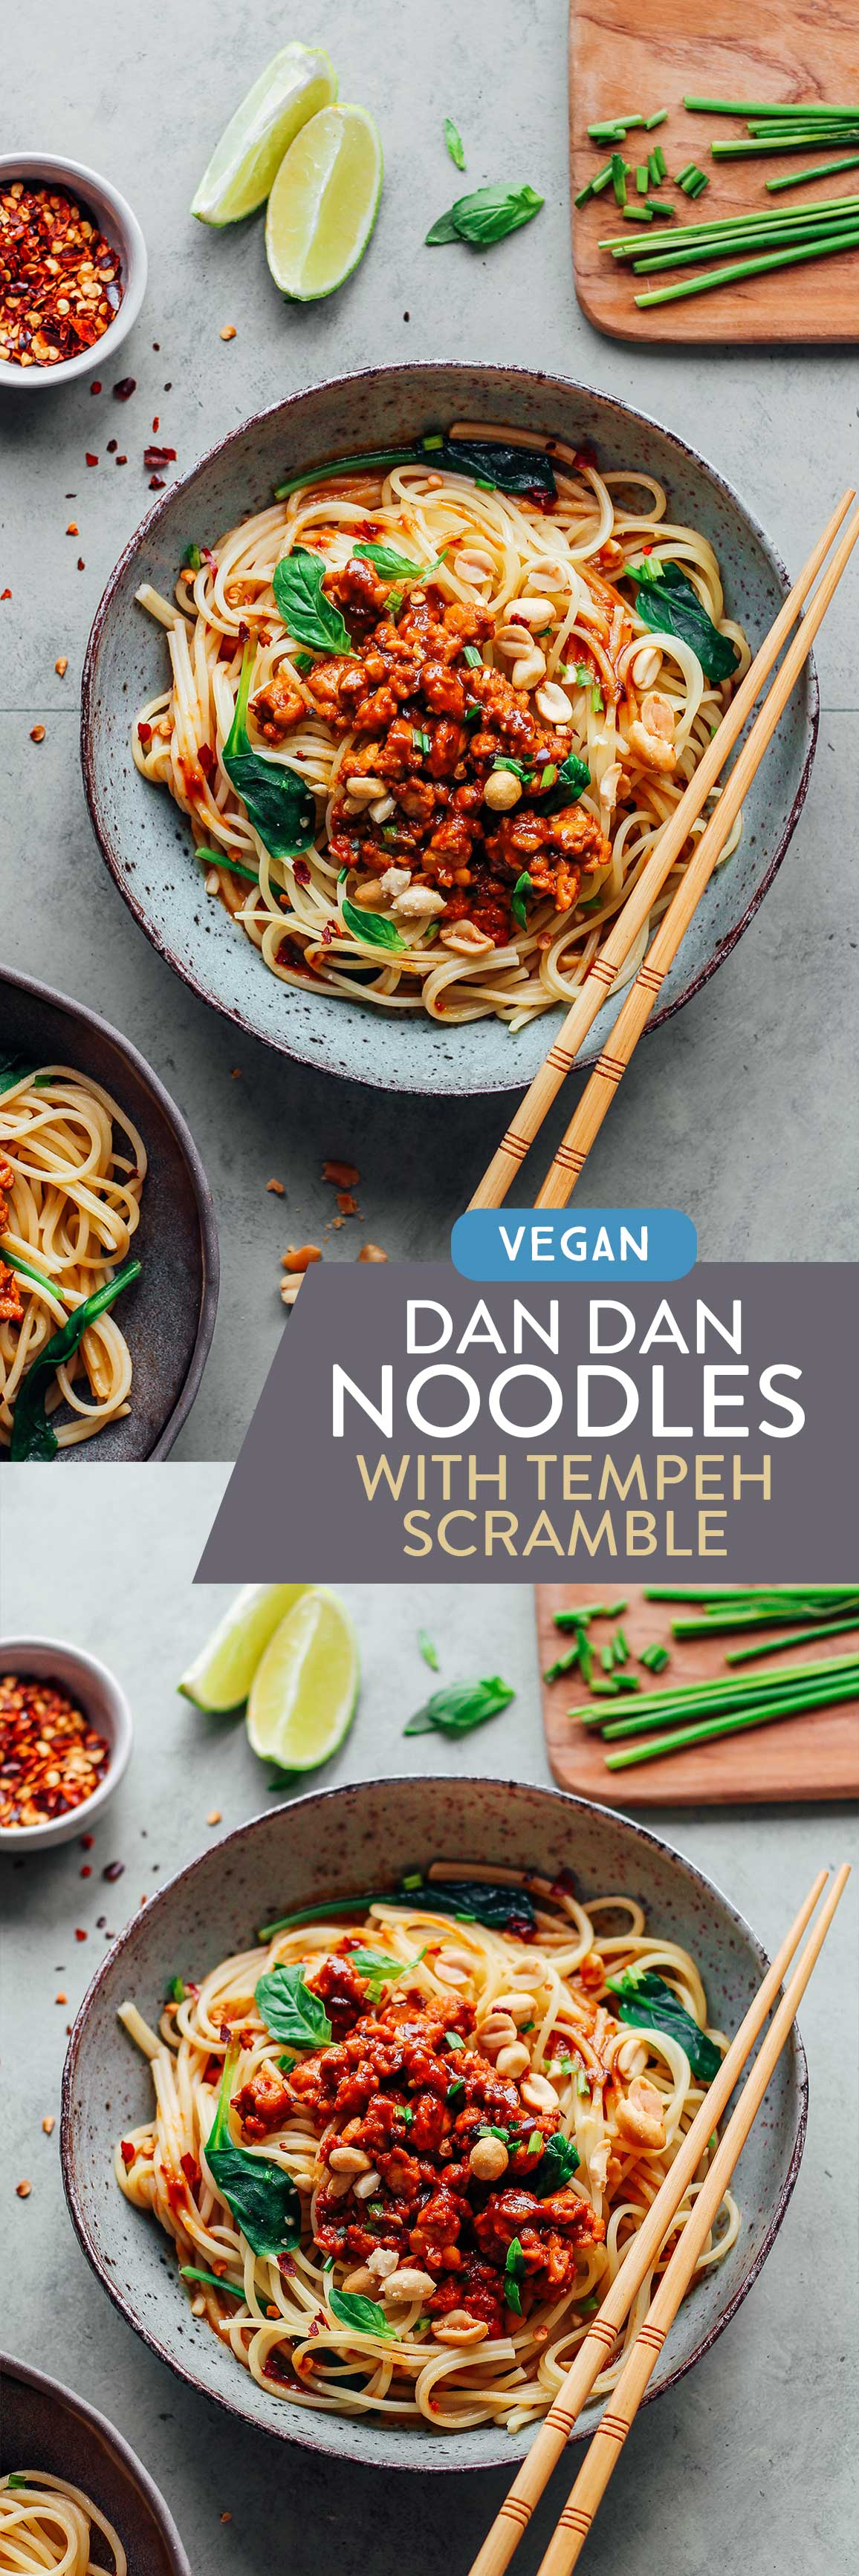 Dan Dan Noodles with Tempeh Scramble